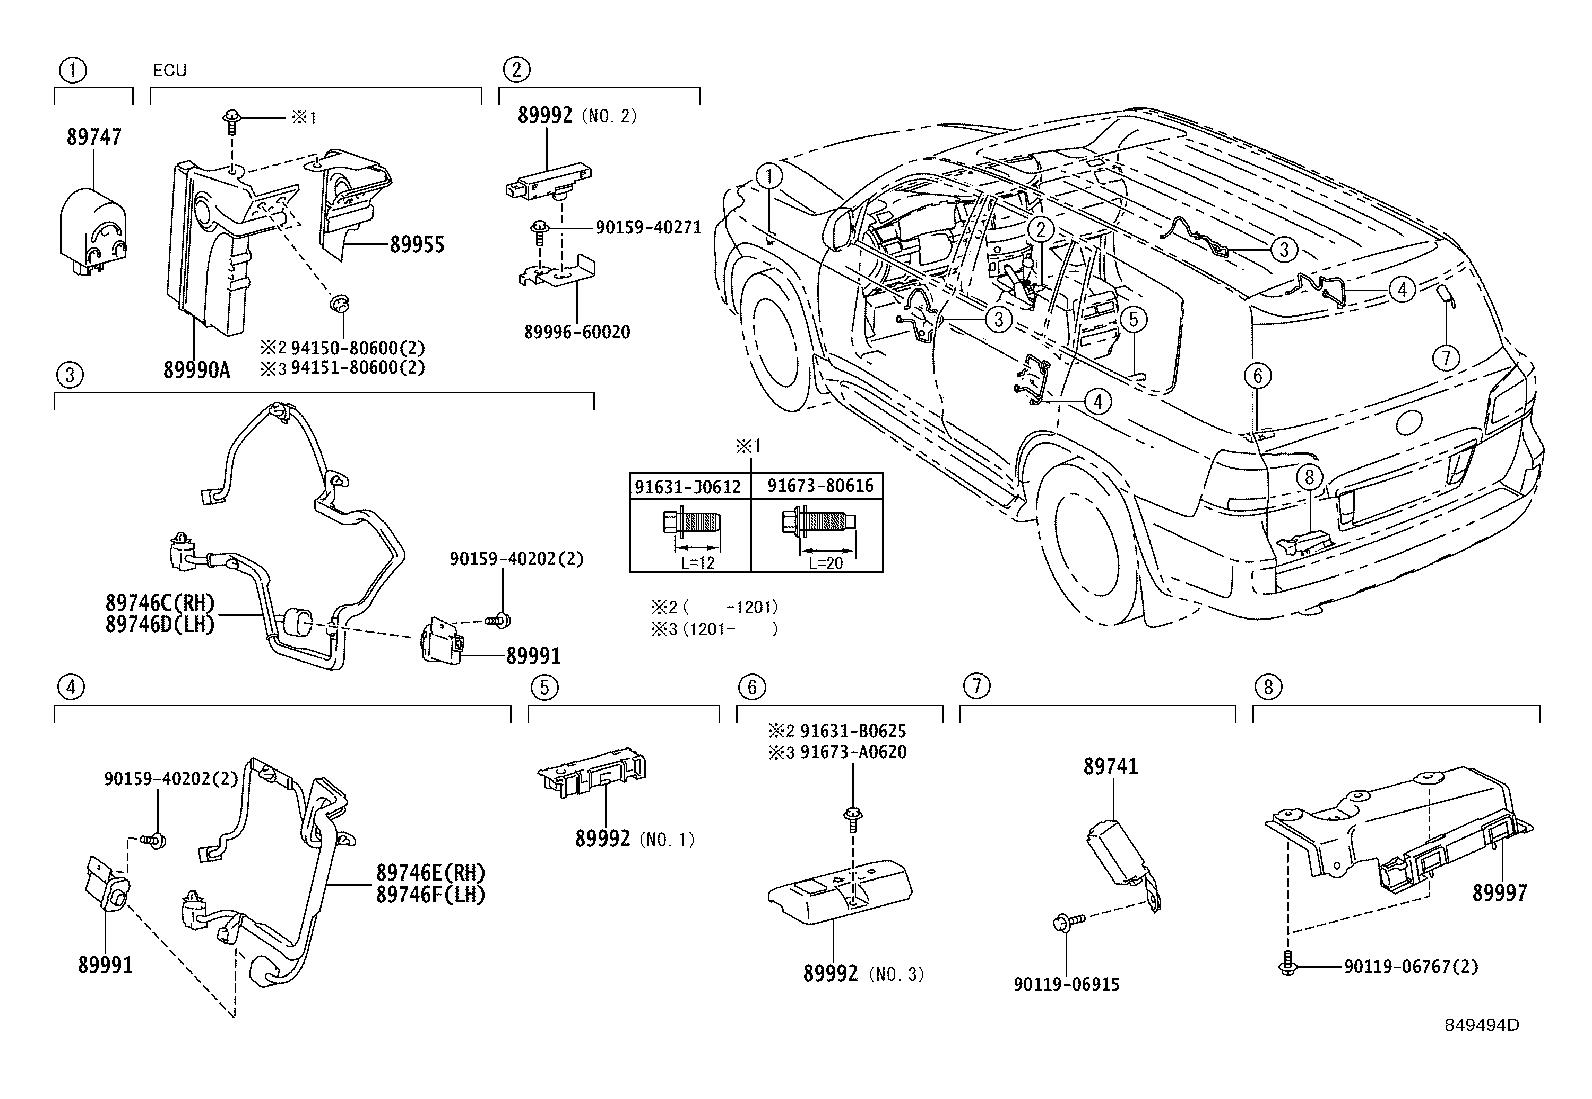 Lexus LX 570 Harness, electrical key wire, no. 3. Wireless